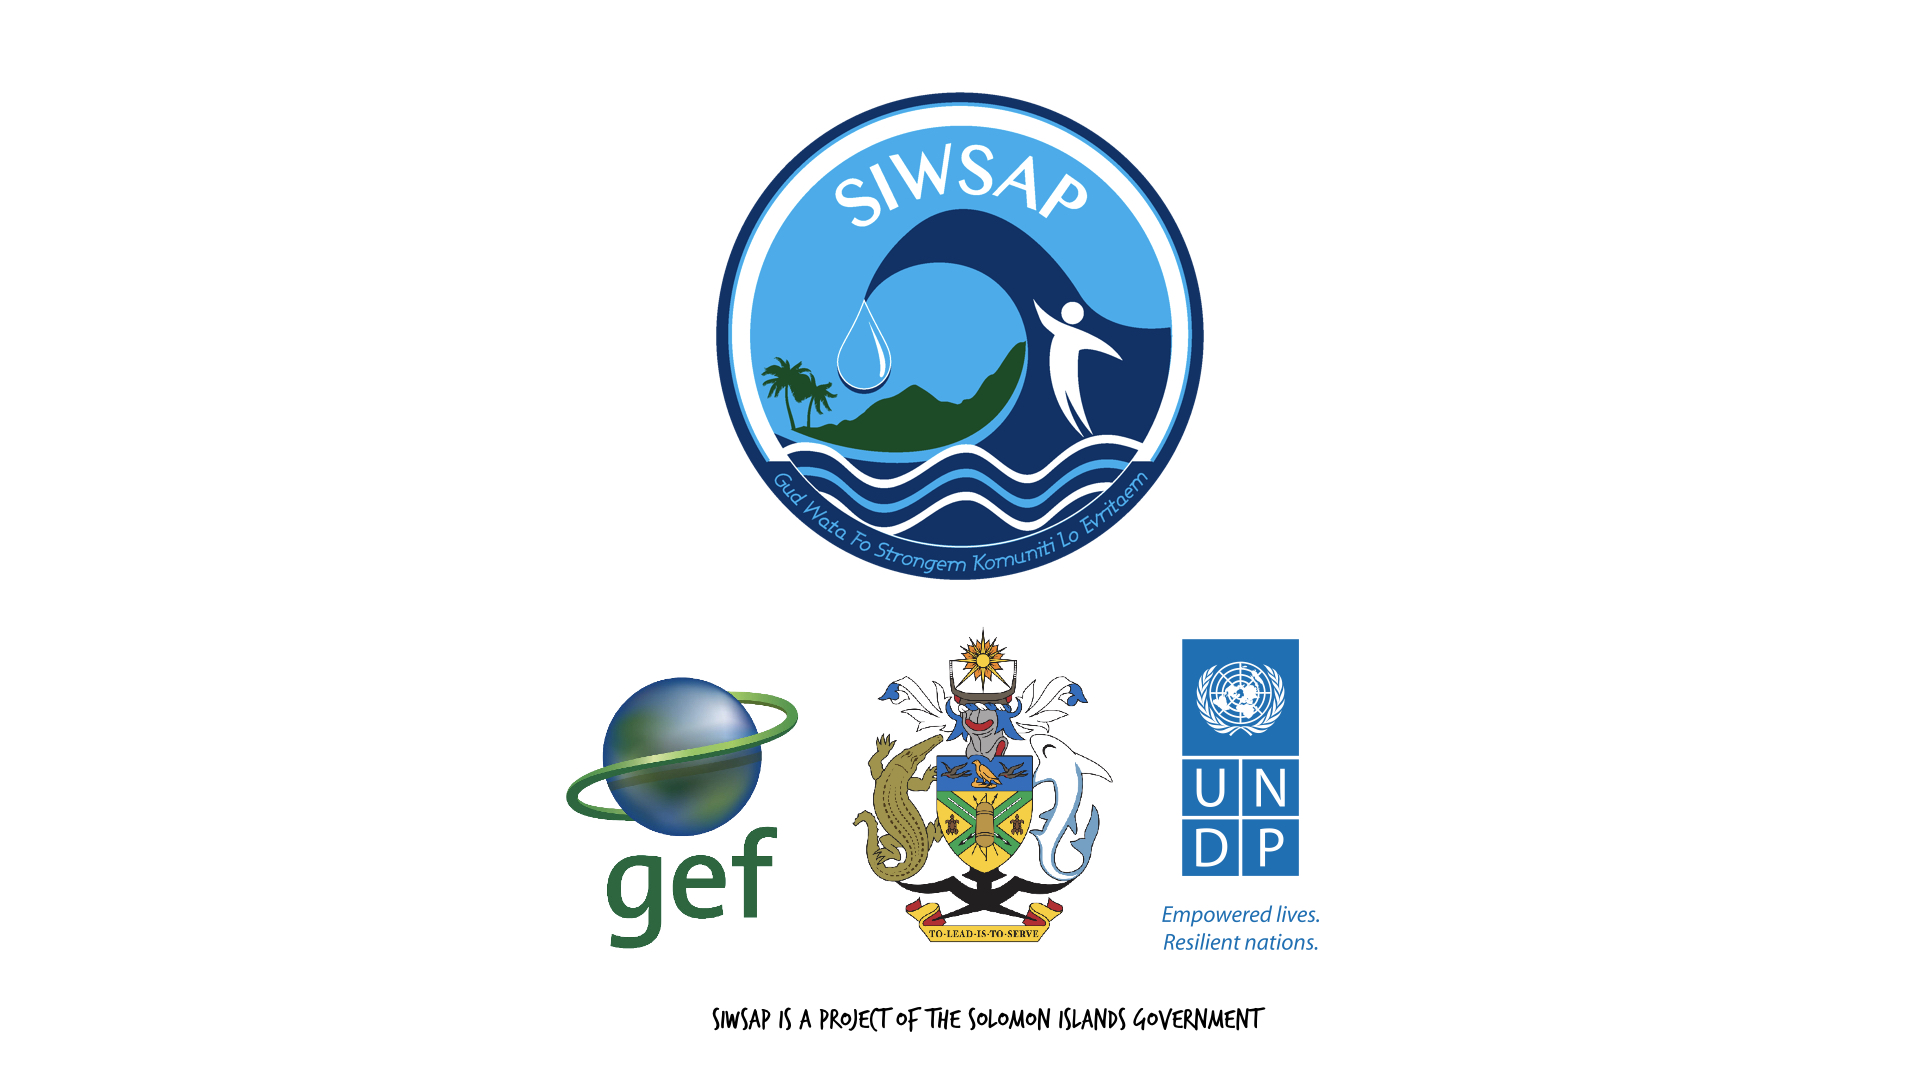 """*The Solomon Islands Water Sector Adaptation Project, """"Gud Wata Fo Strongem Komuniti Lo Evritaem"""", is funded by the GEF-Least Developed Countries Fund and implemented by the Water Resources Division of Ministry of Mines, Energy and Rural Electrification with technical support from the United Nations Development Programme. The project aims to improve the resilience of water resources to the impacts climate change and improve health, sanitation and quality of life, so that livelihoods can be enhanced and sustained in the targeted vulnerable areas.   Hydro Met stations installed under the project were led by Solomon Islands Met Service and NIWA of New Zealand and are part of the overall national CLEWS. SIWSAP exists at the request of the Solomon Islands Government and in line with current national development plans. UNDP implements SIWSAP on behalf of the Solomon Islands Government.   To find out more, go to: http://siwsap.org.sb/"""